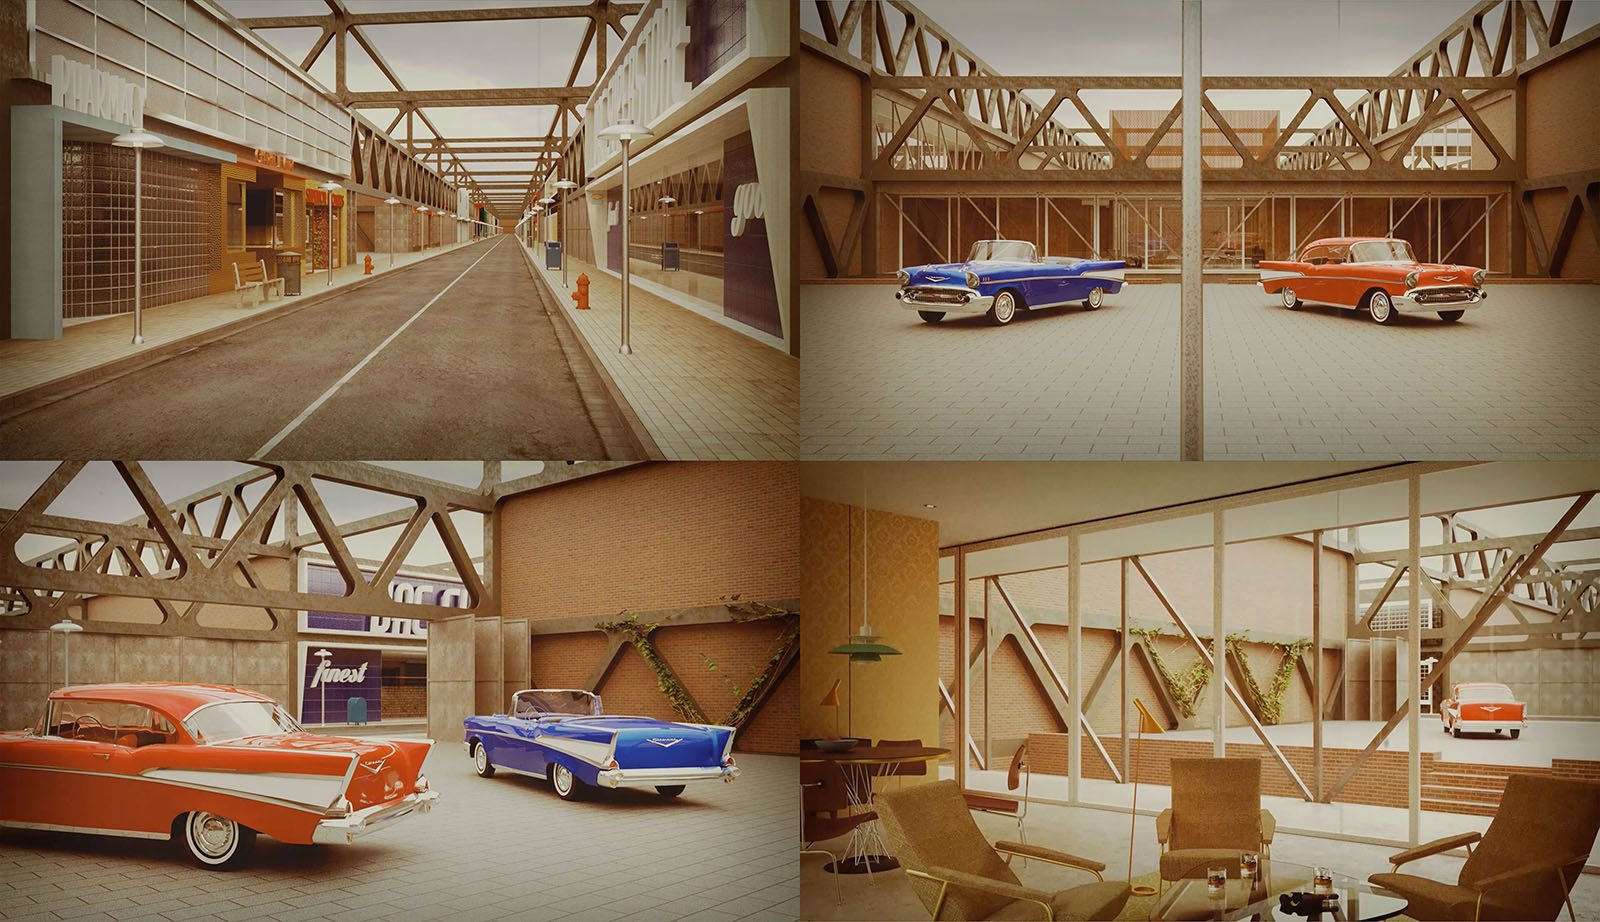 The Chevrolet 1957. Architekturfilm von Bruno Hansen